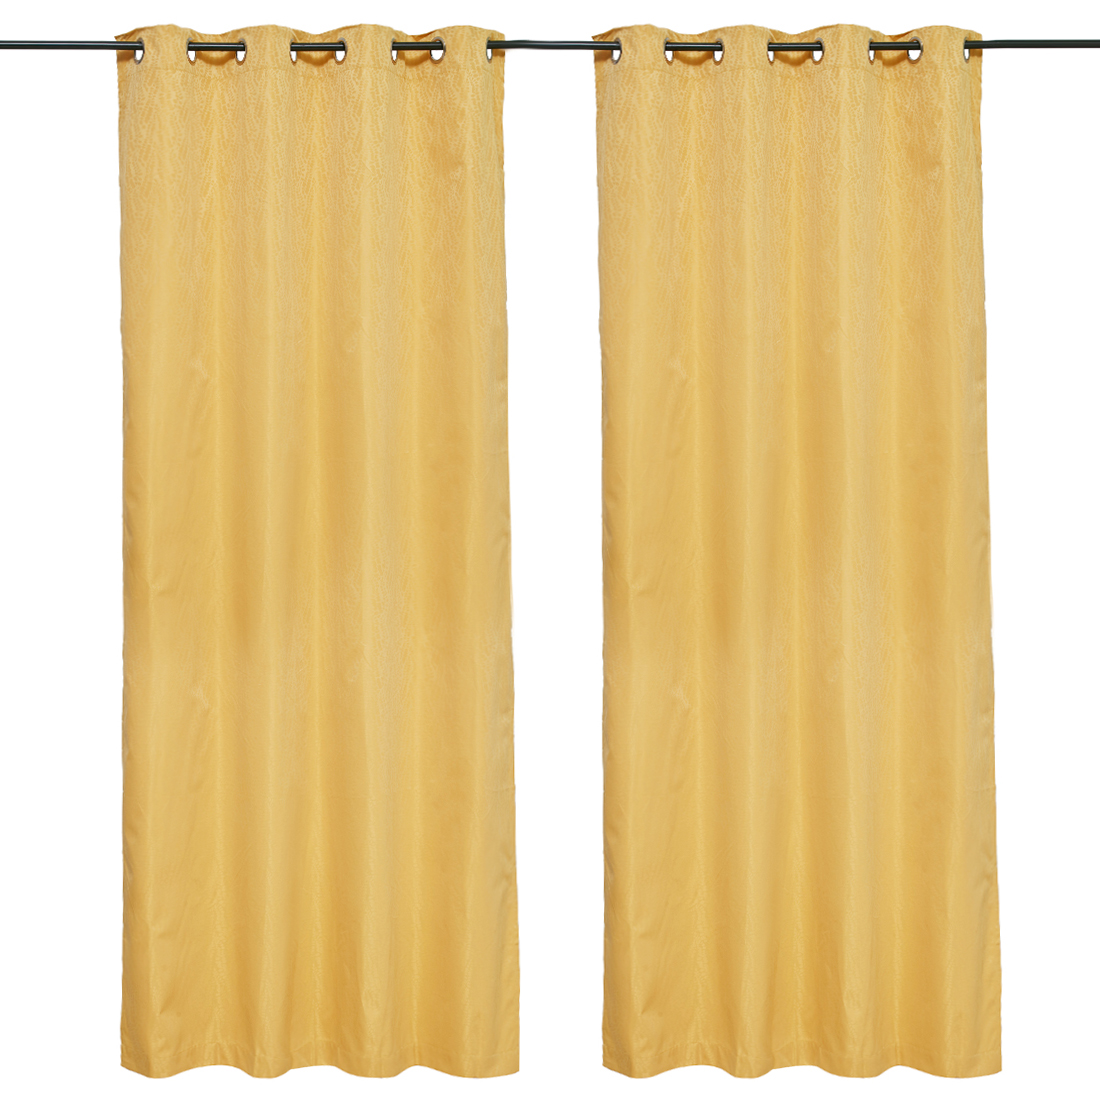 Emilia Jacquard set of 2 Polyester Door Curtains in Mustard Colour by Living Essence